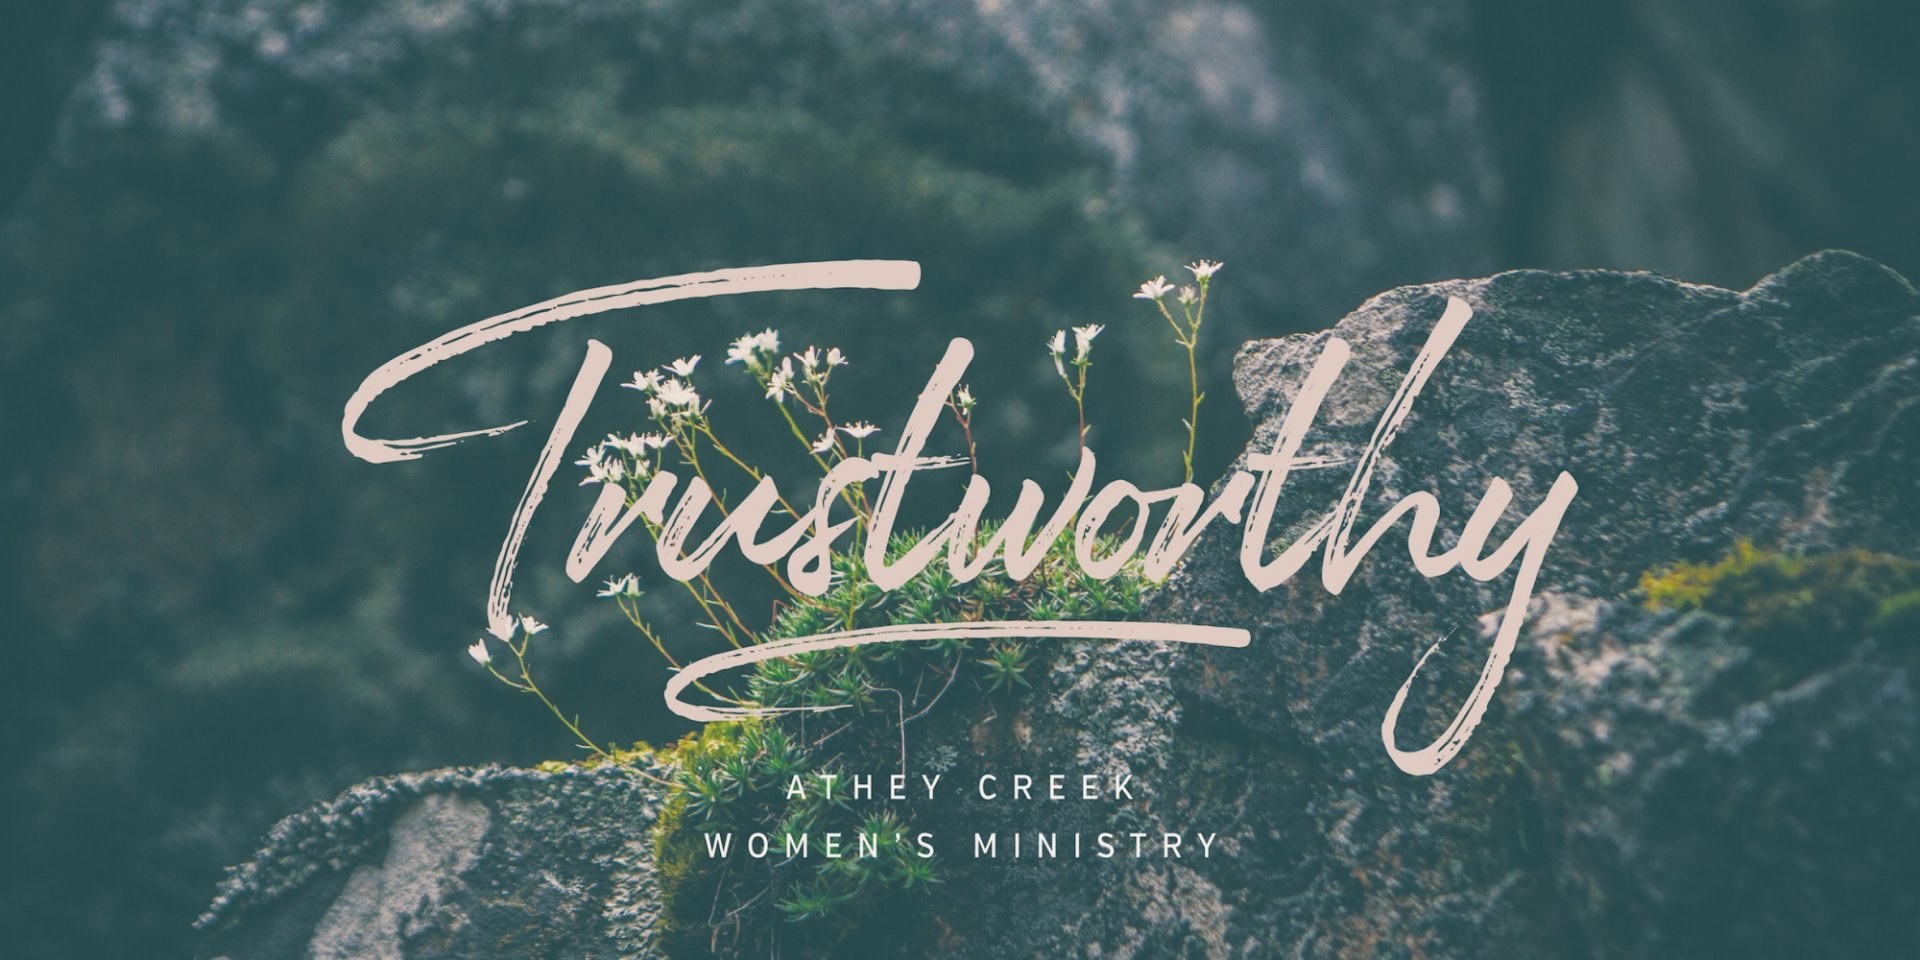 Poster forTrustworthy | The Restoration of Joseph